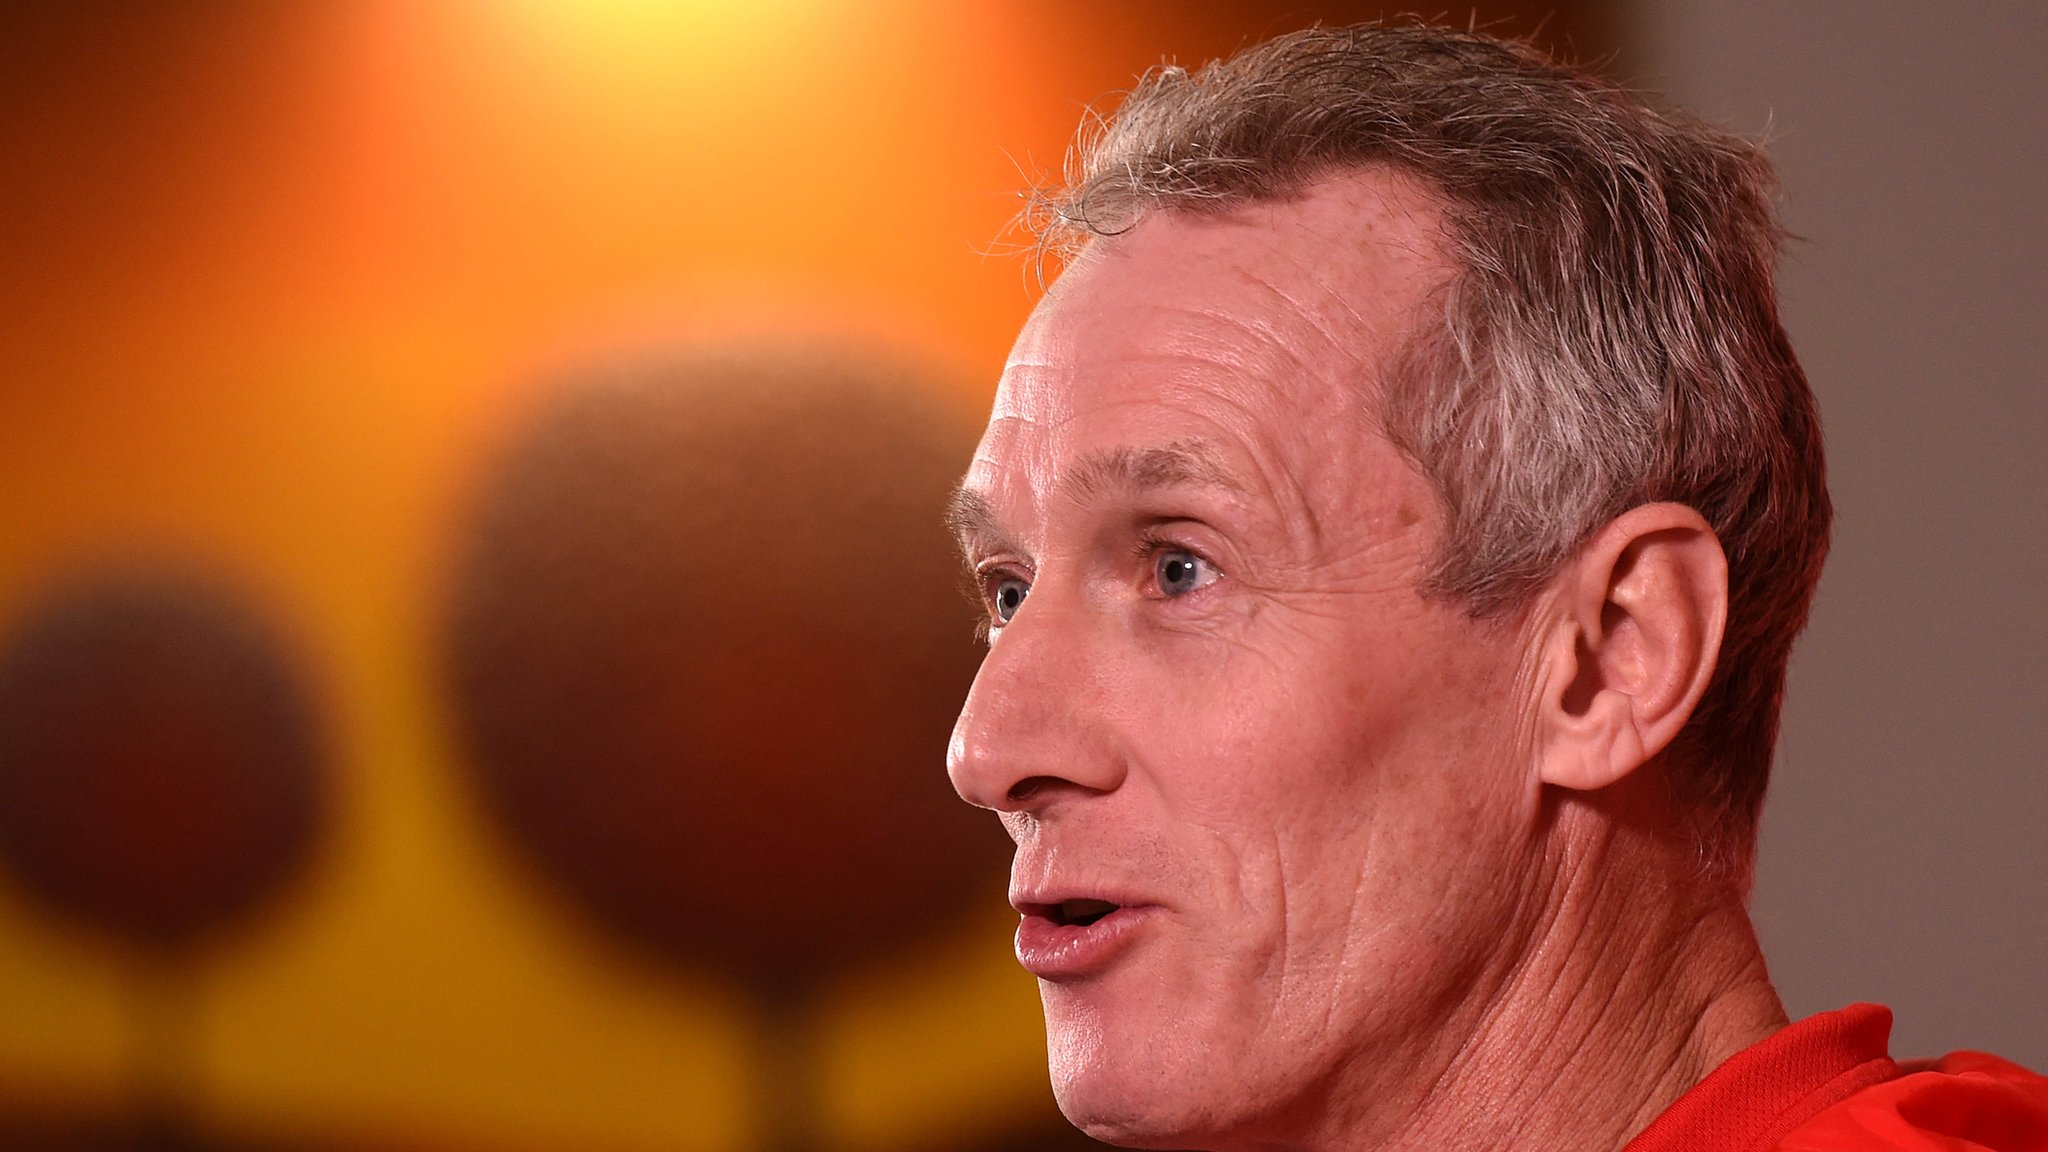 Wales v South Africa: Rob Howley hopes Wales create own history